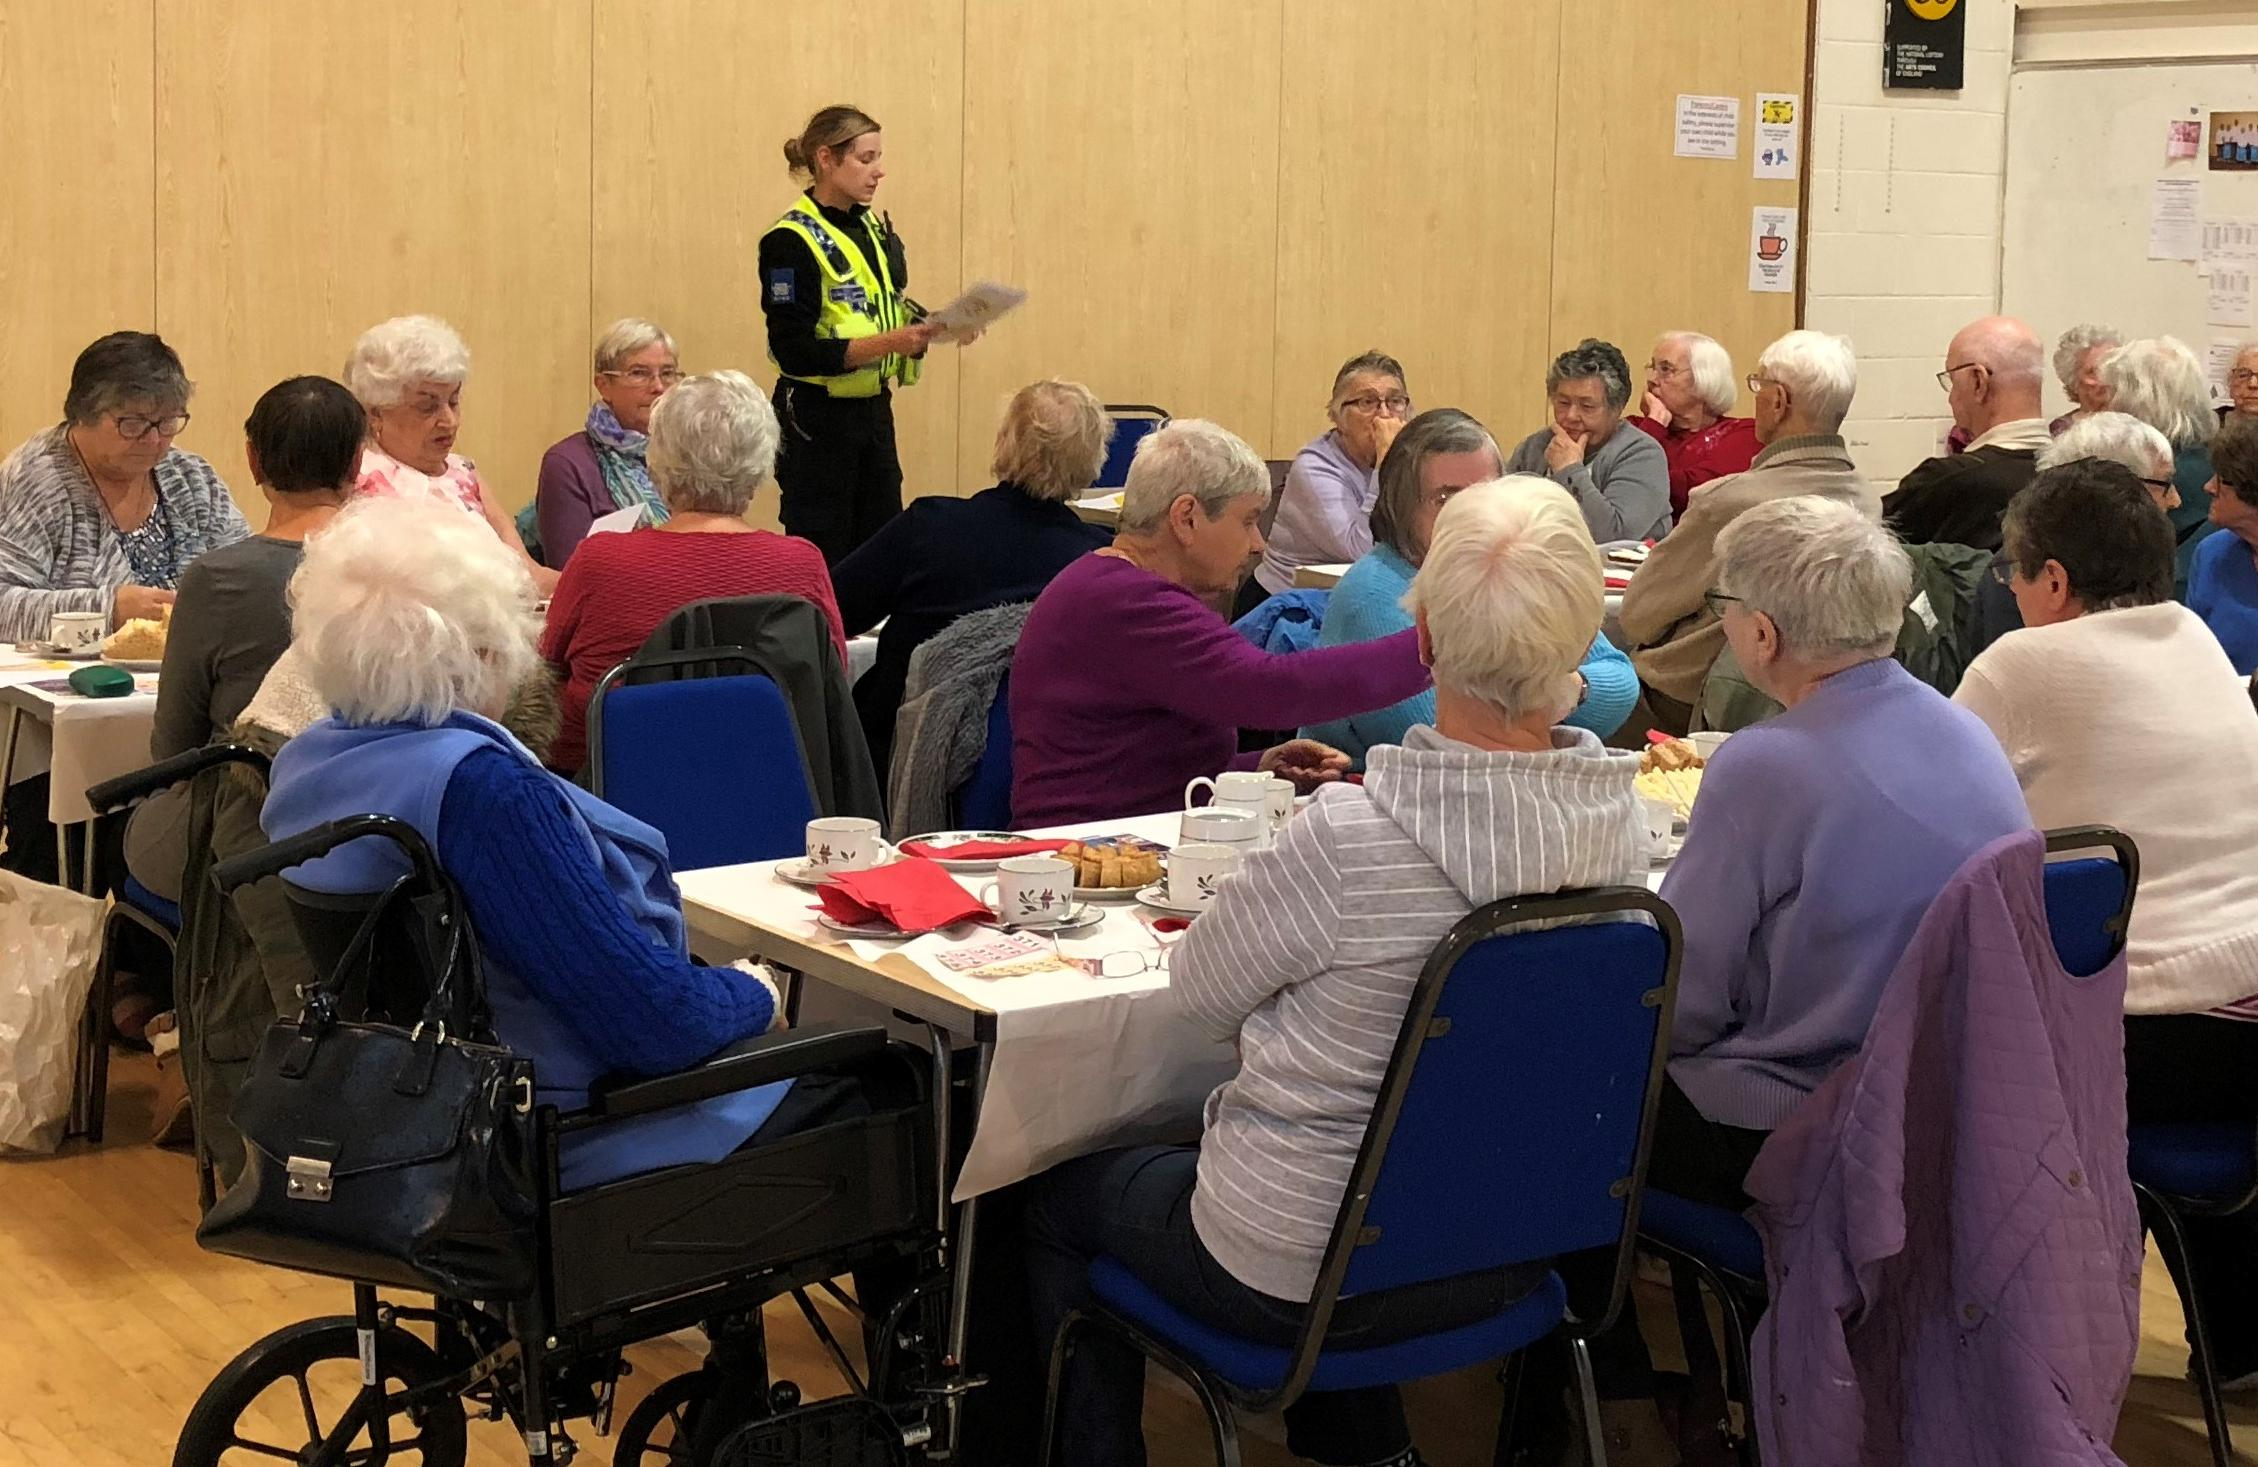 PCSO Heather Mills talking to the group